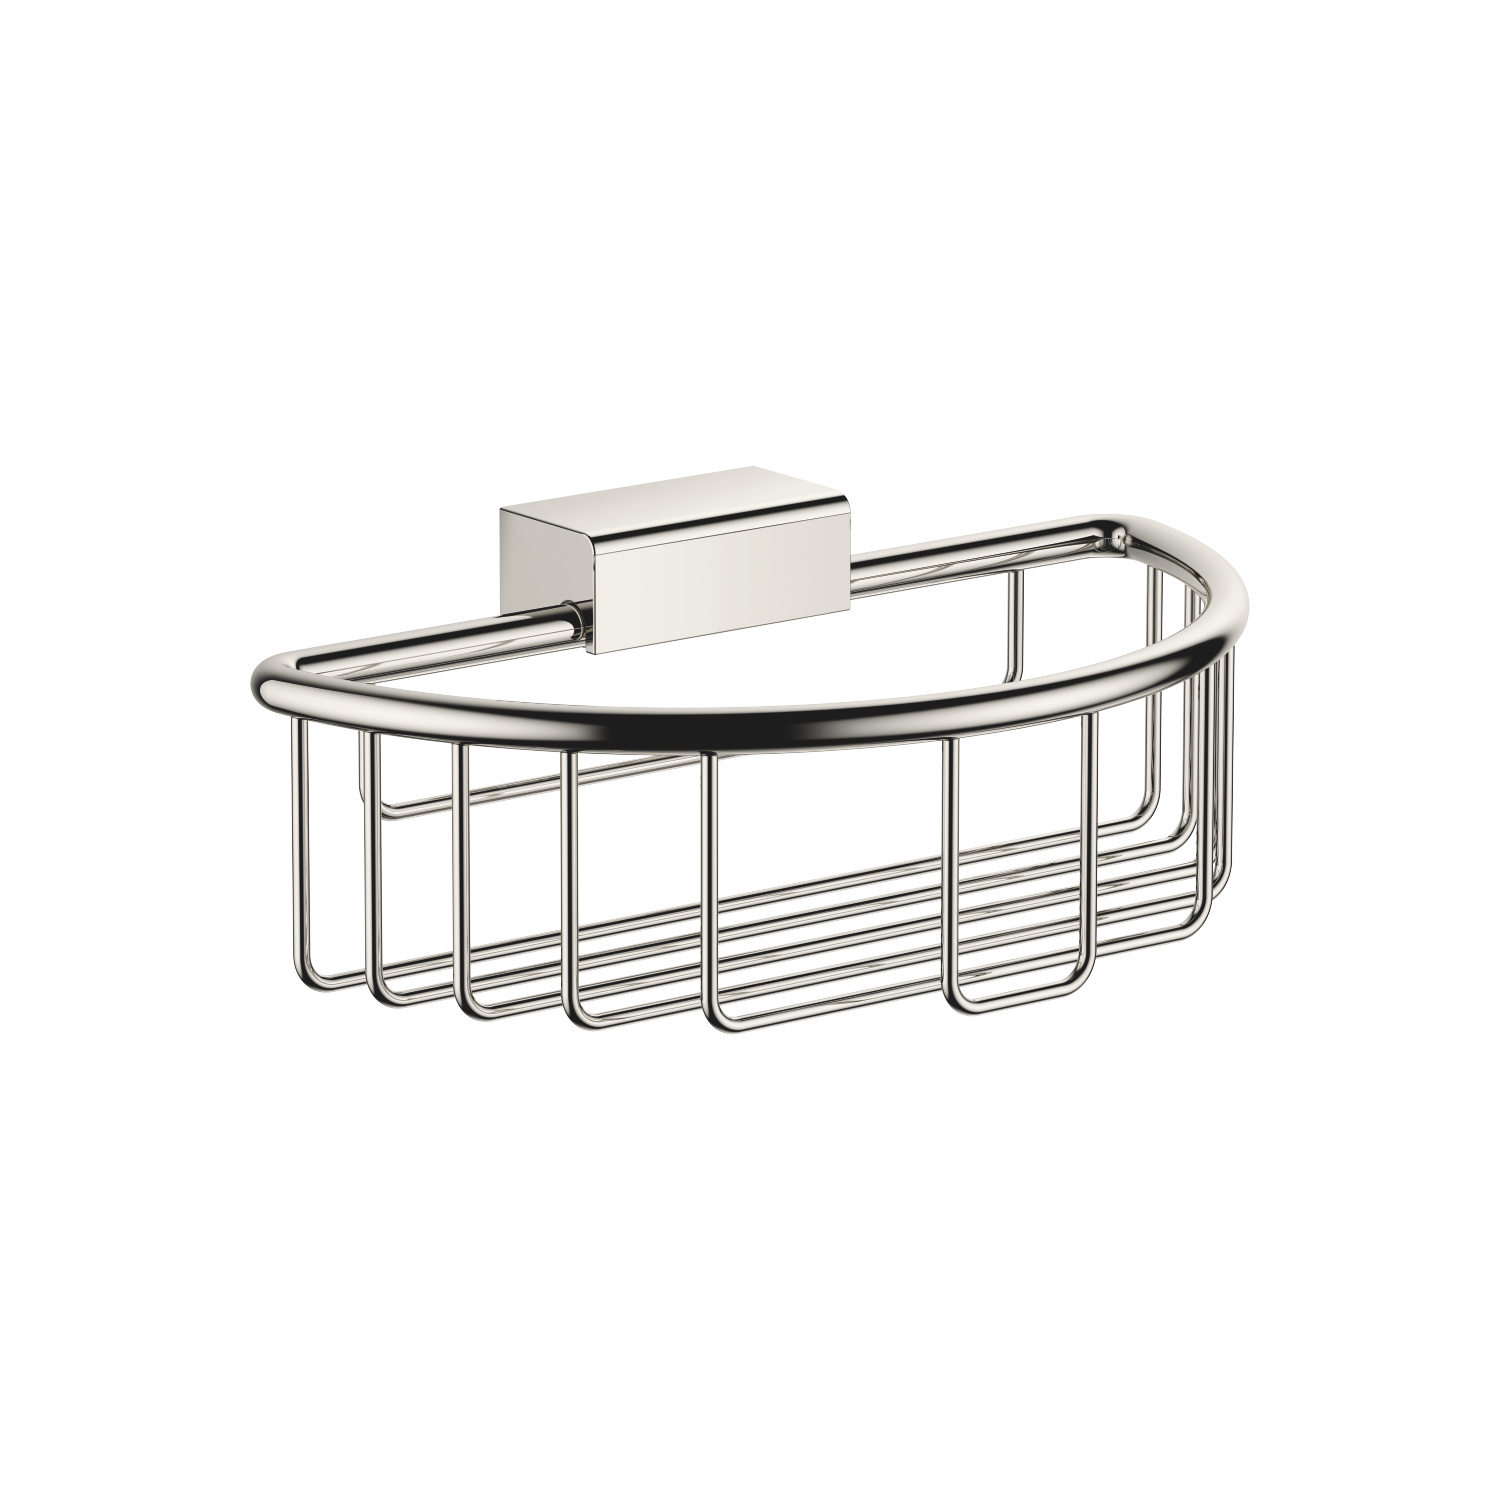 Shower basket for wall mounting - platinum